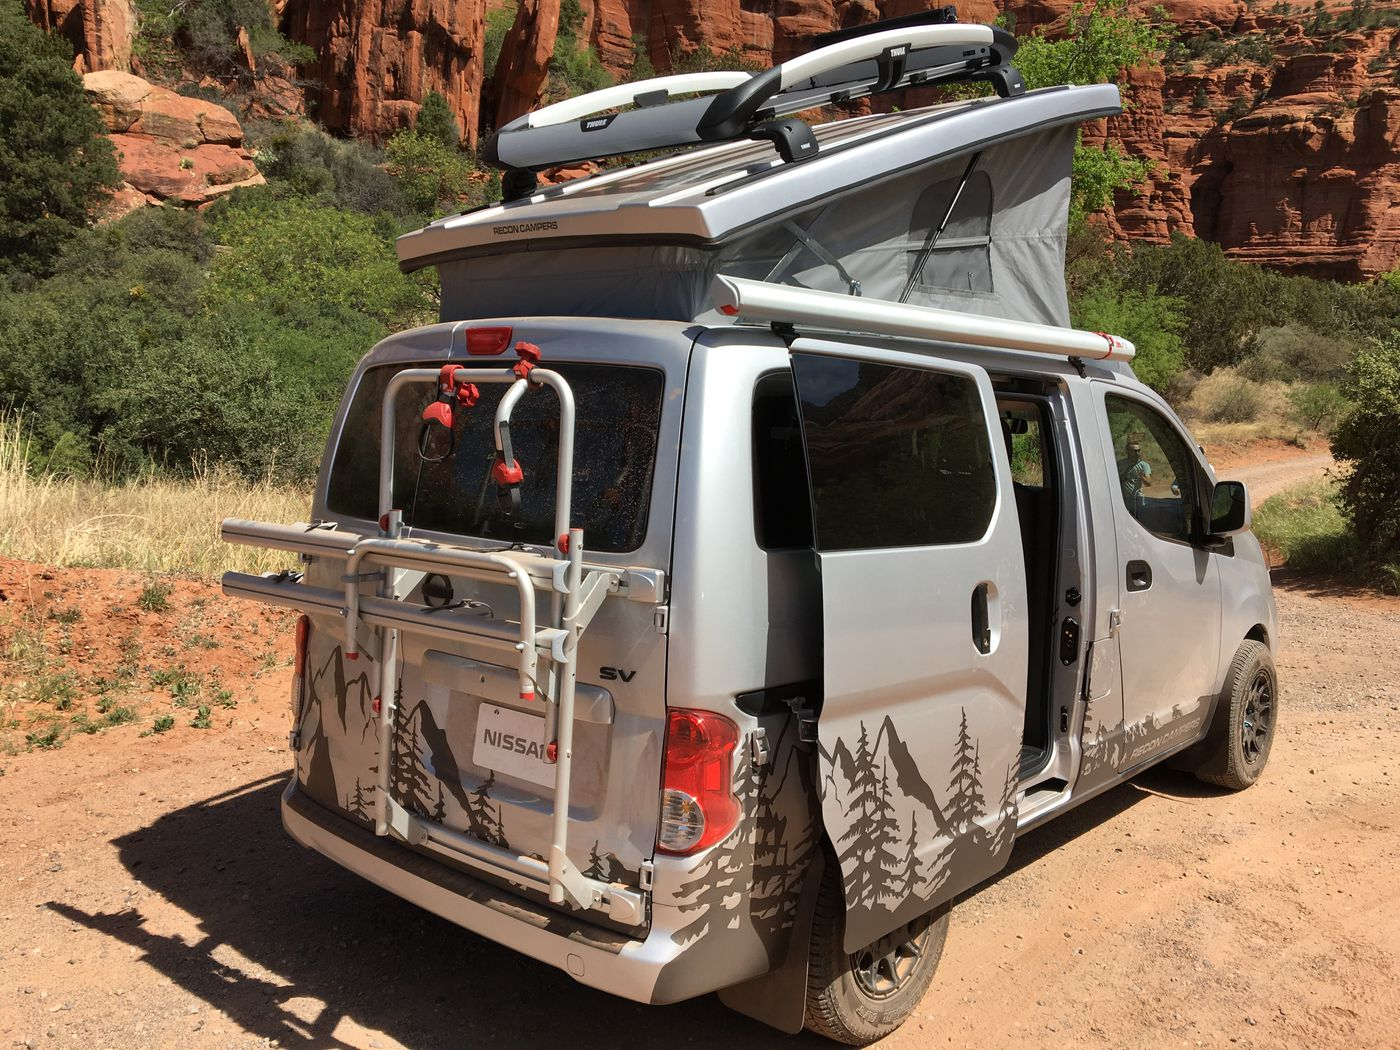 The 5 best affordable RVs and camper vans for sale - Curbed